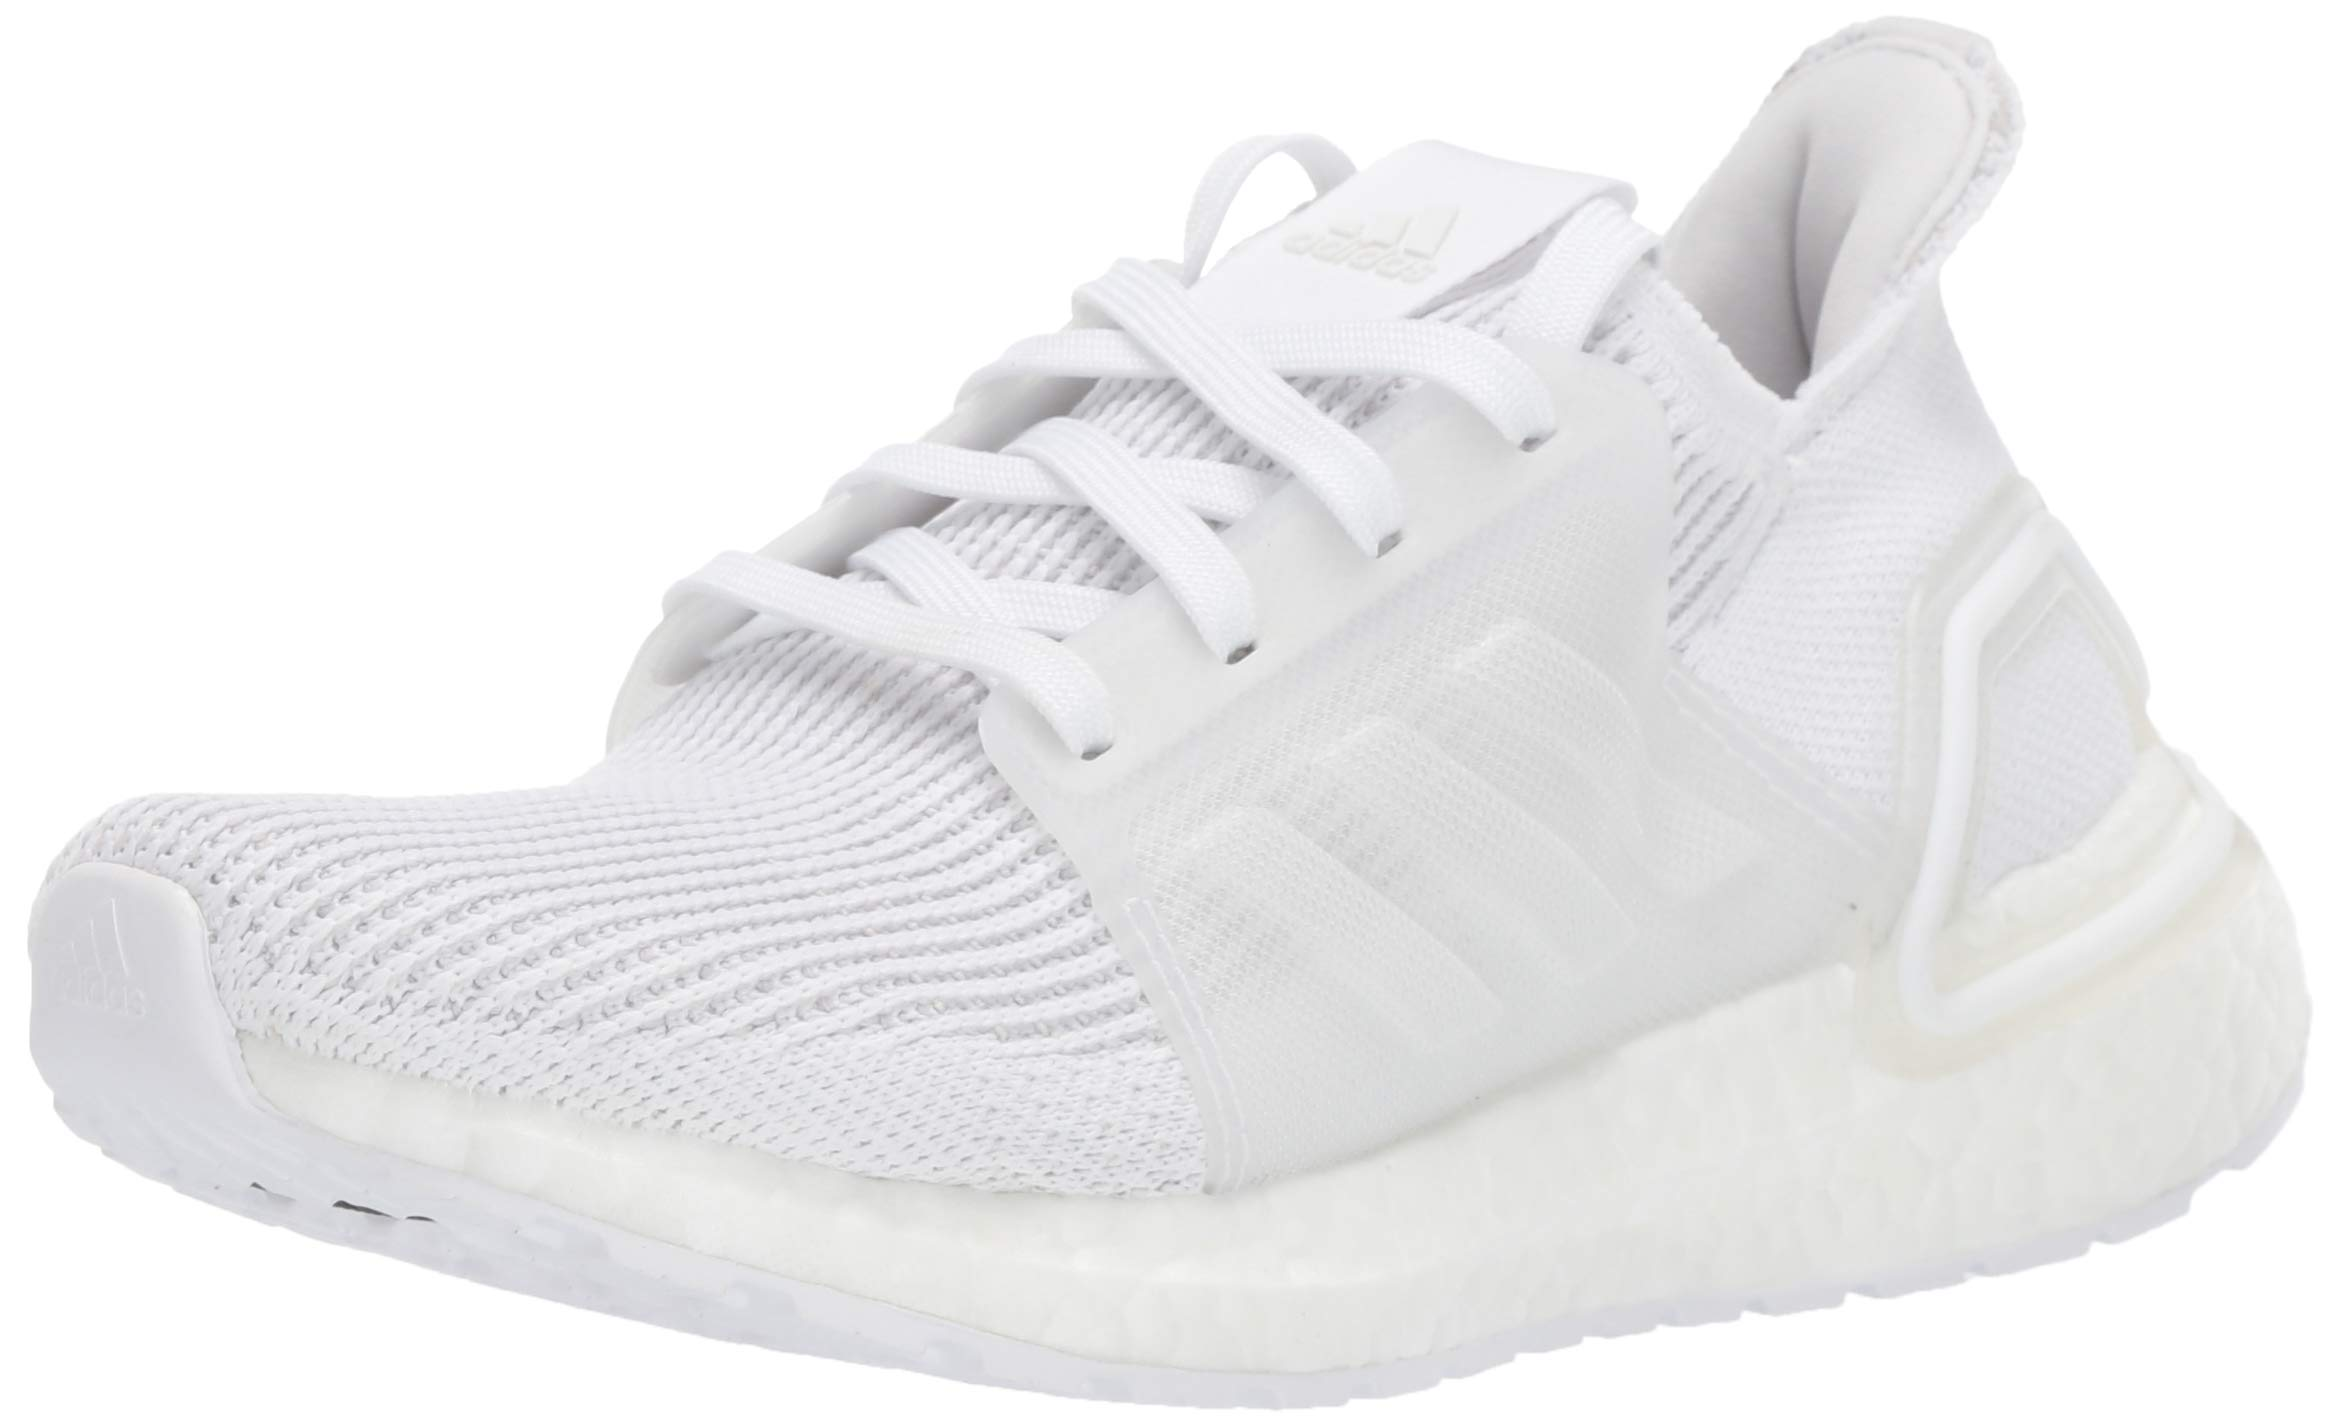 adidas Unisex Ultraboost 19 Running Shoe, White/Grey, 6 M US Big Kid by adidas